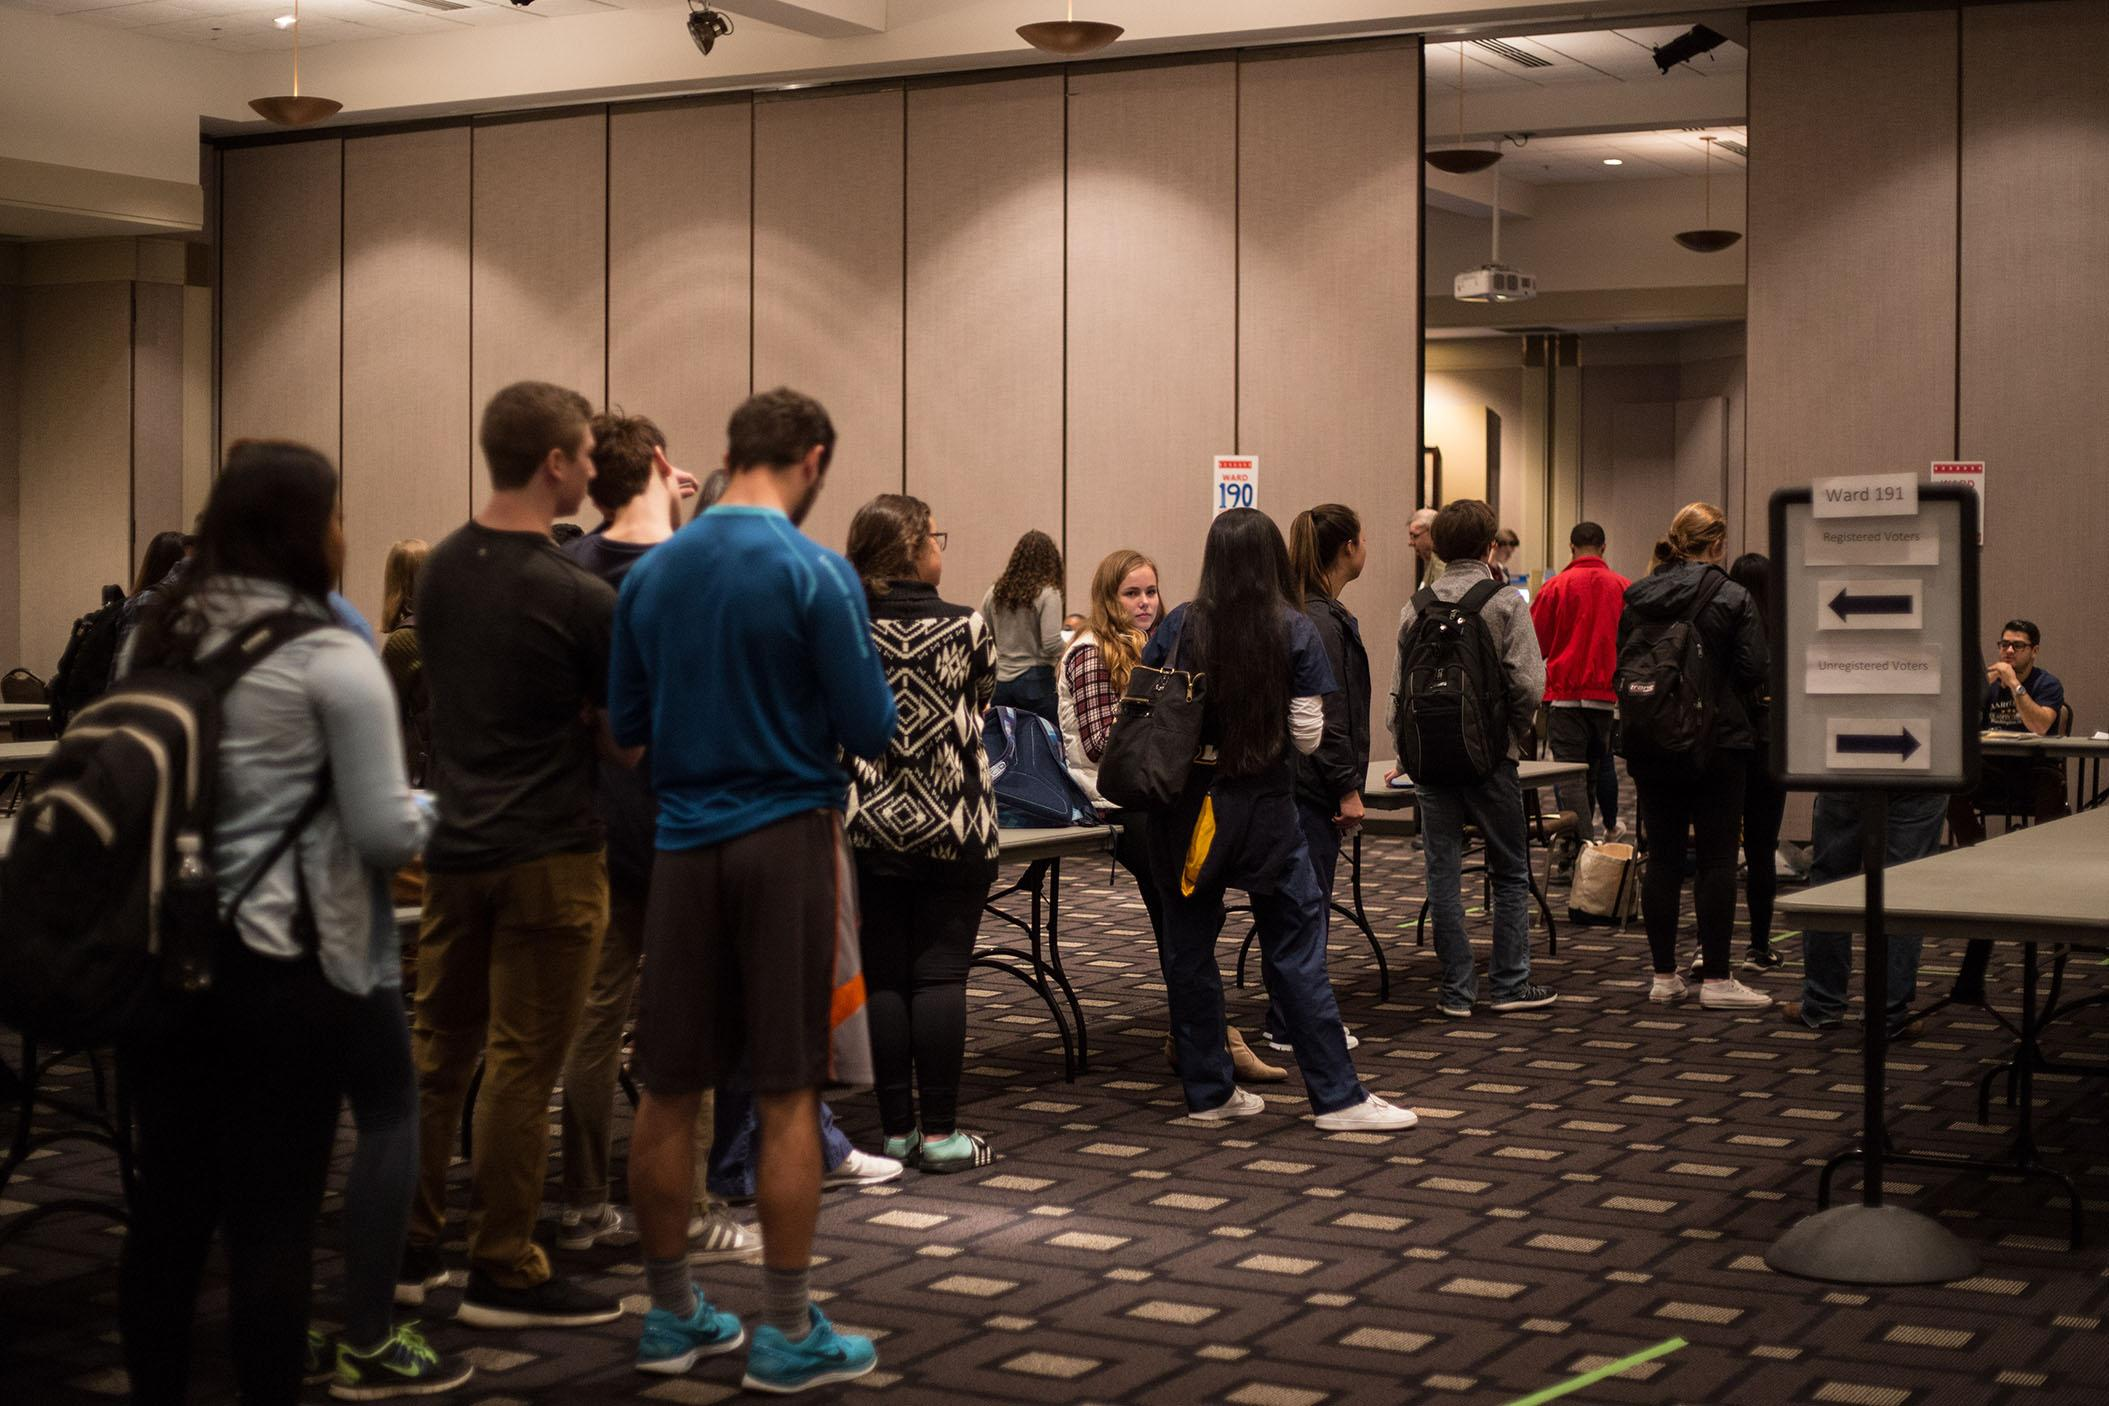 Students wait in line at the Alumni Memorial Union to vote.